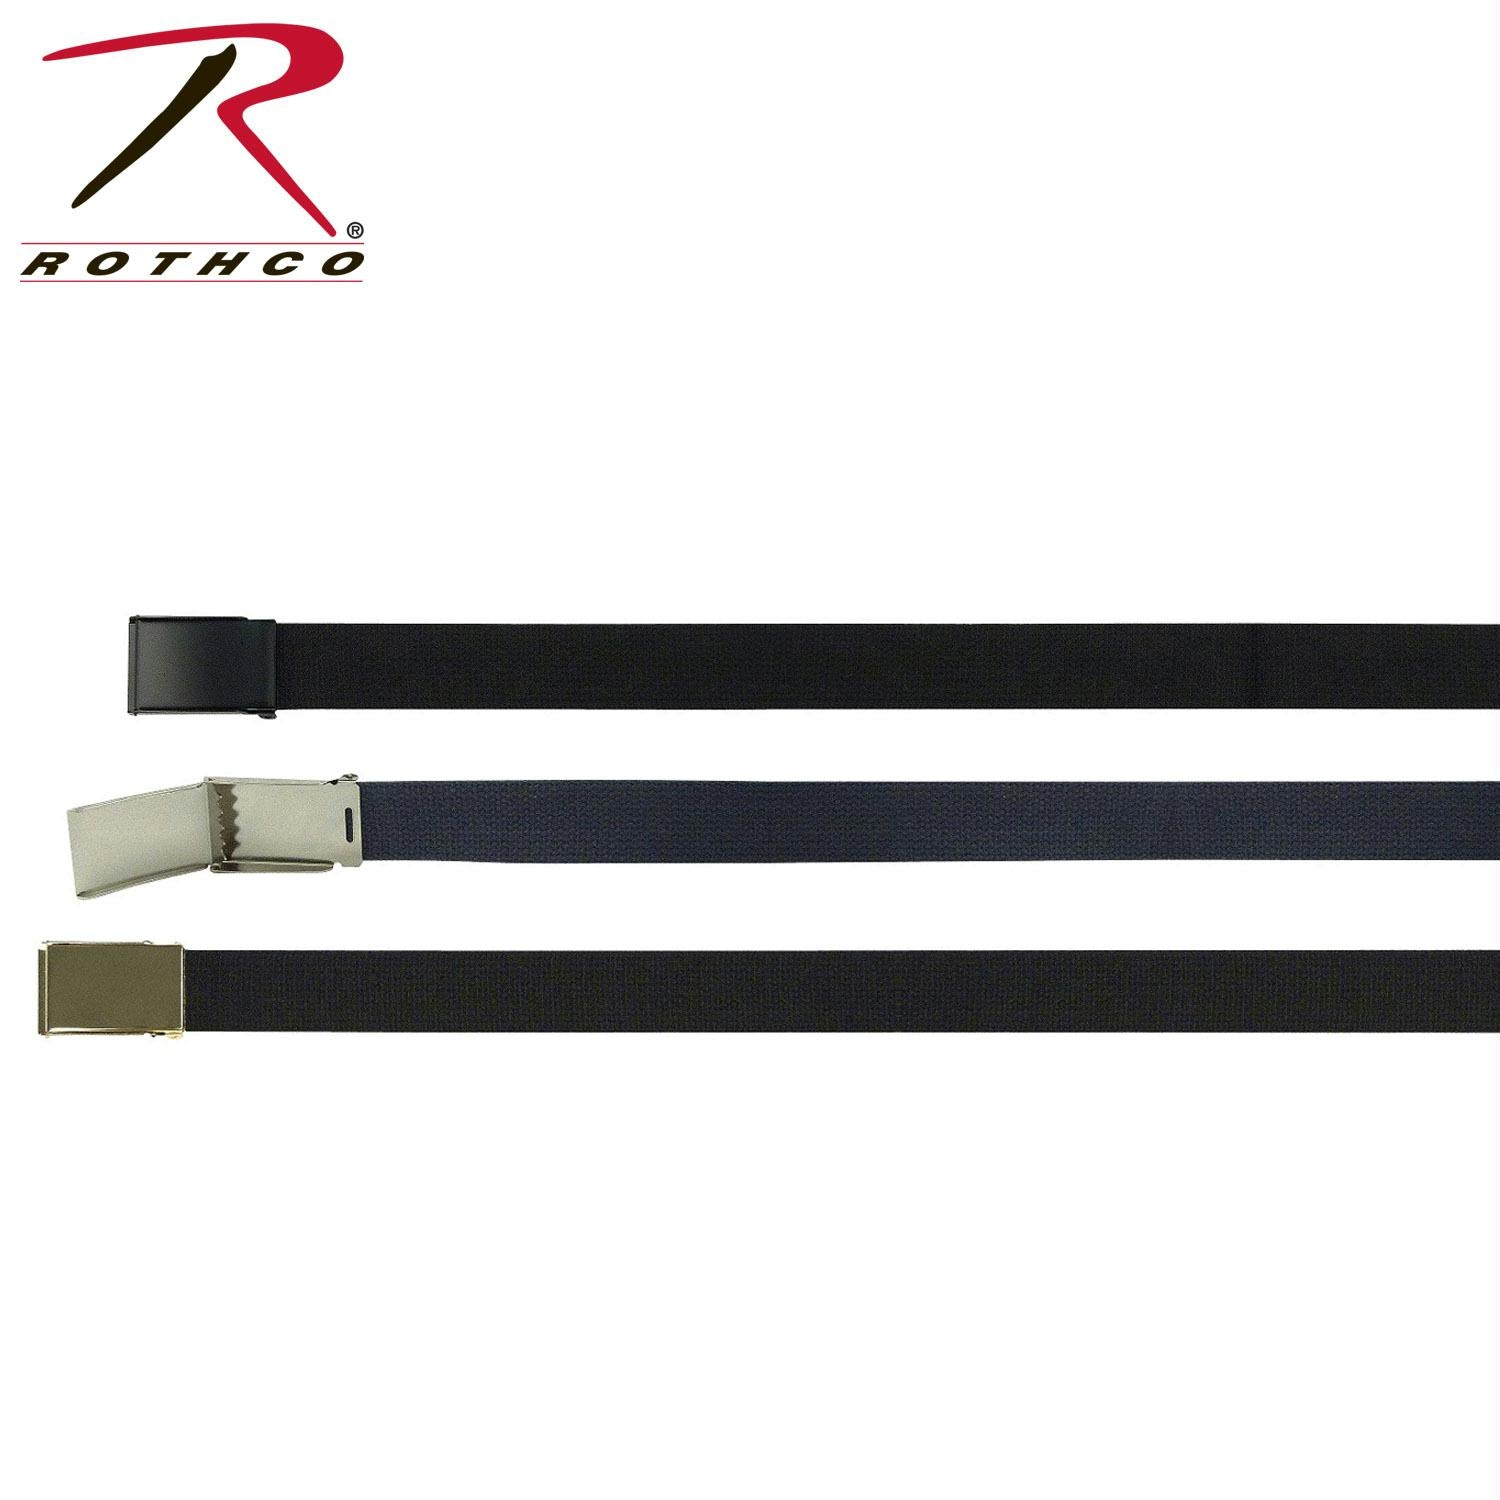 Rothco Military Web Belts With Flip Buckle - Chrome / Navy Blue